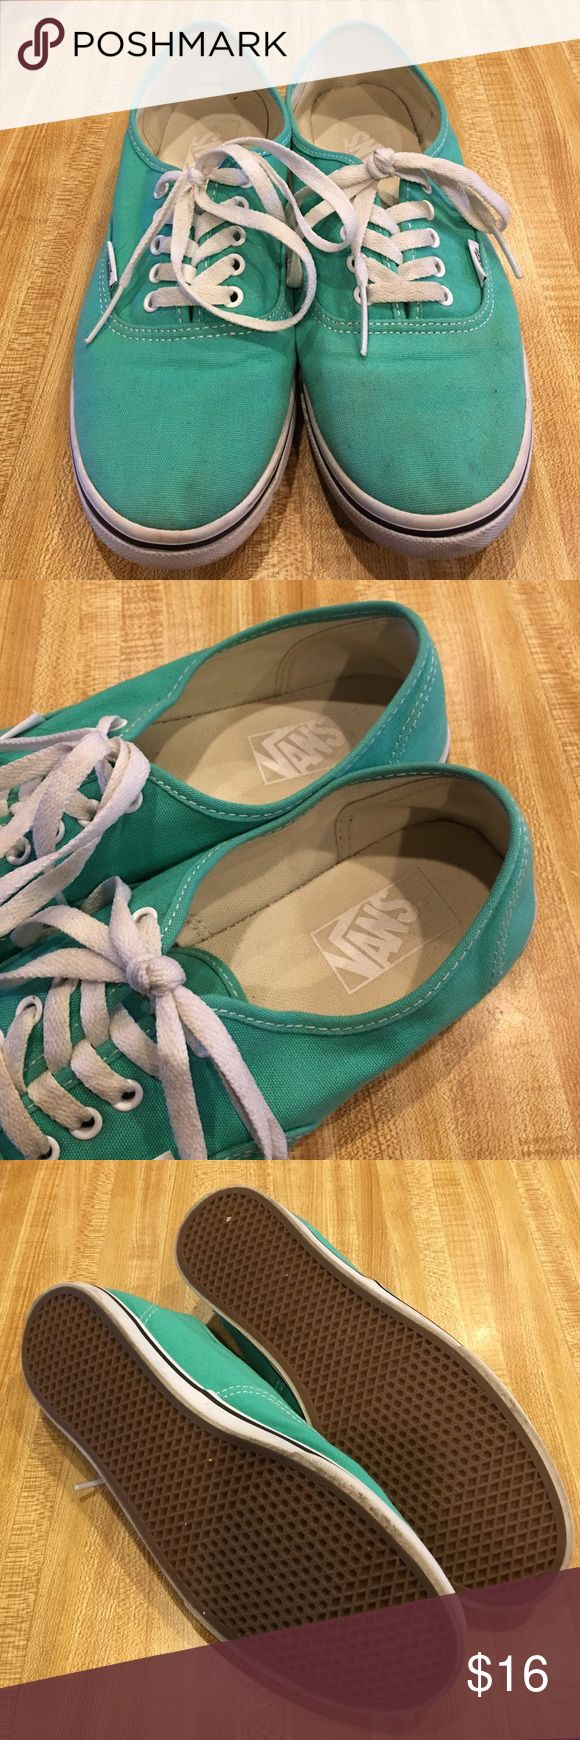 Vans Reposh! Mint green Vans. Super cute. Size 9 but they seem to run small. I am a true 9 and my toes are at the tip. Vans Shoes